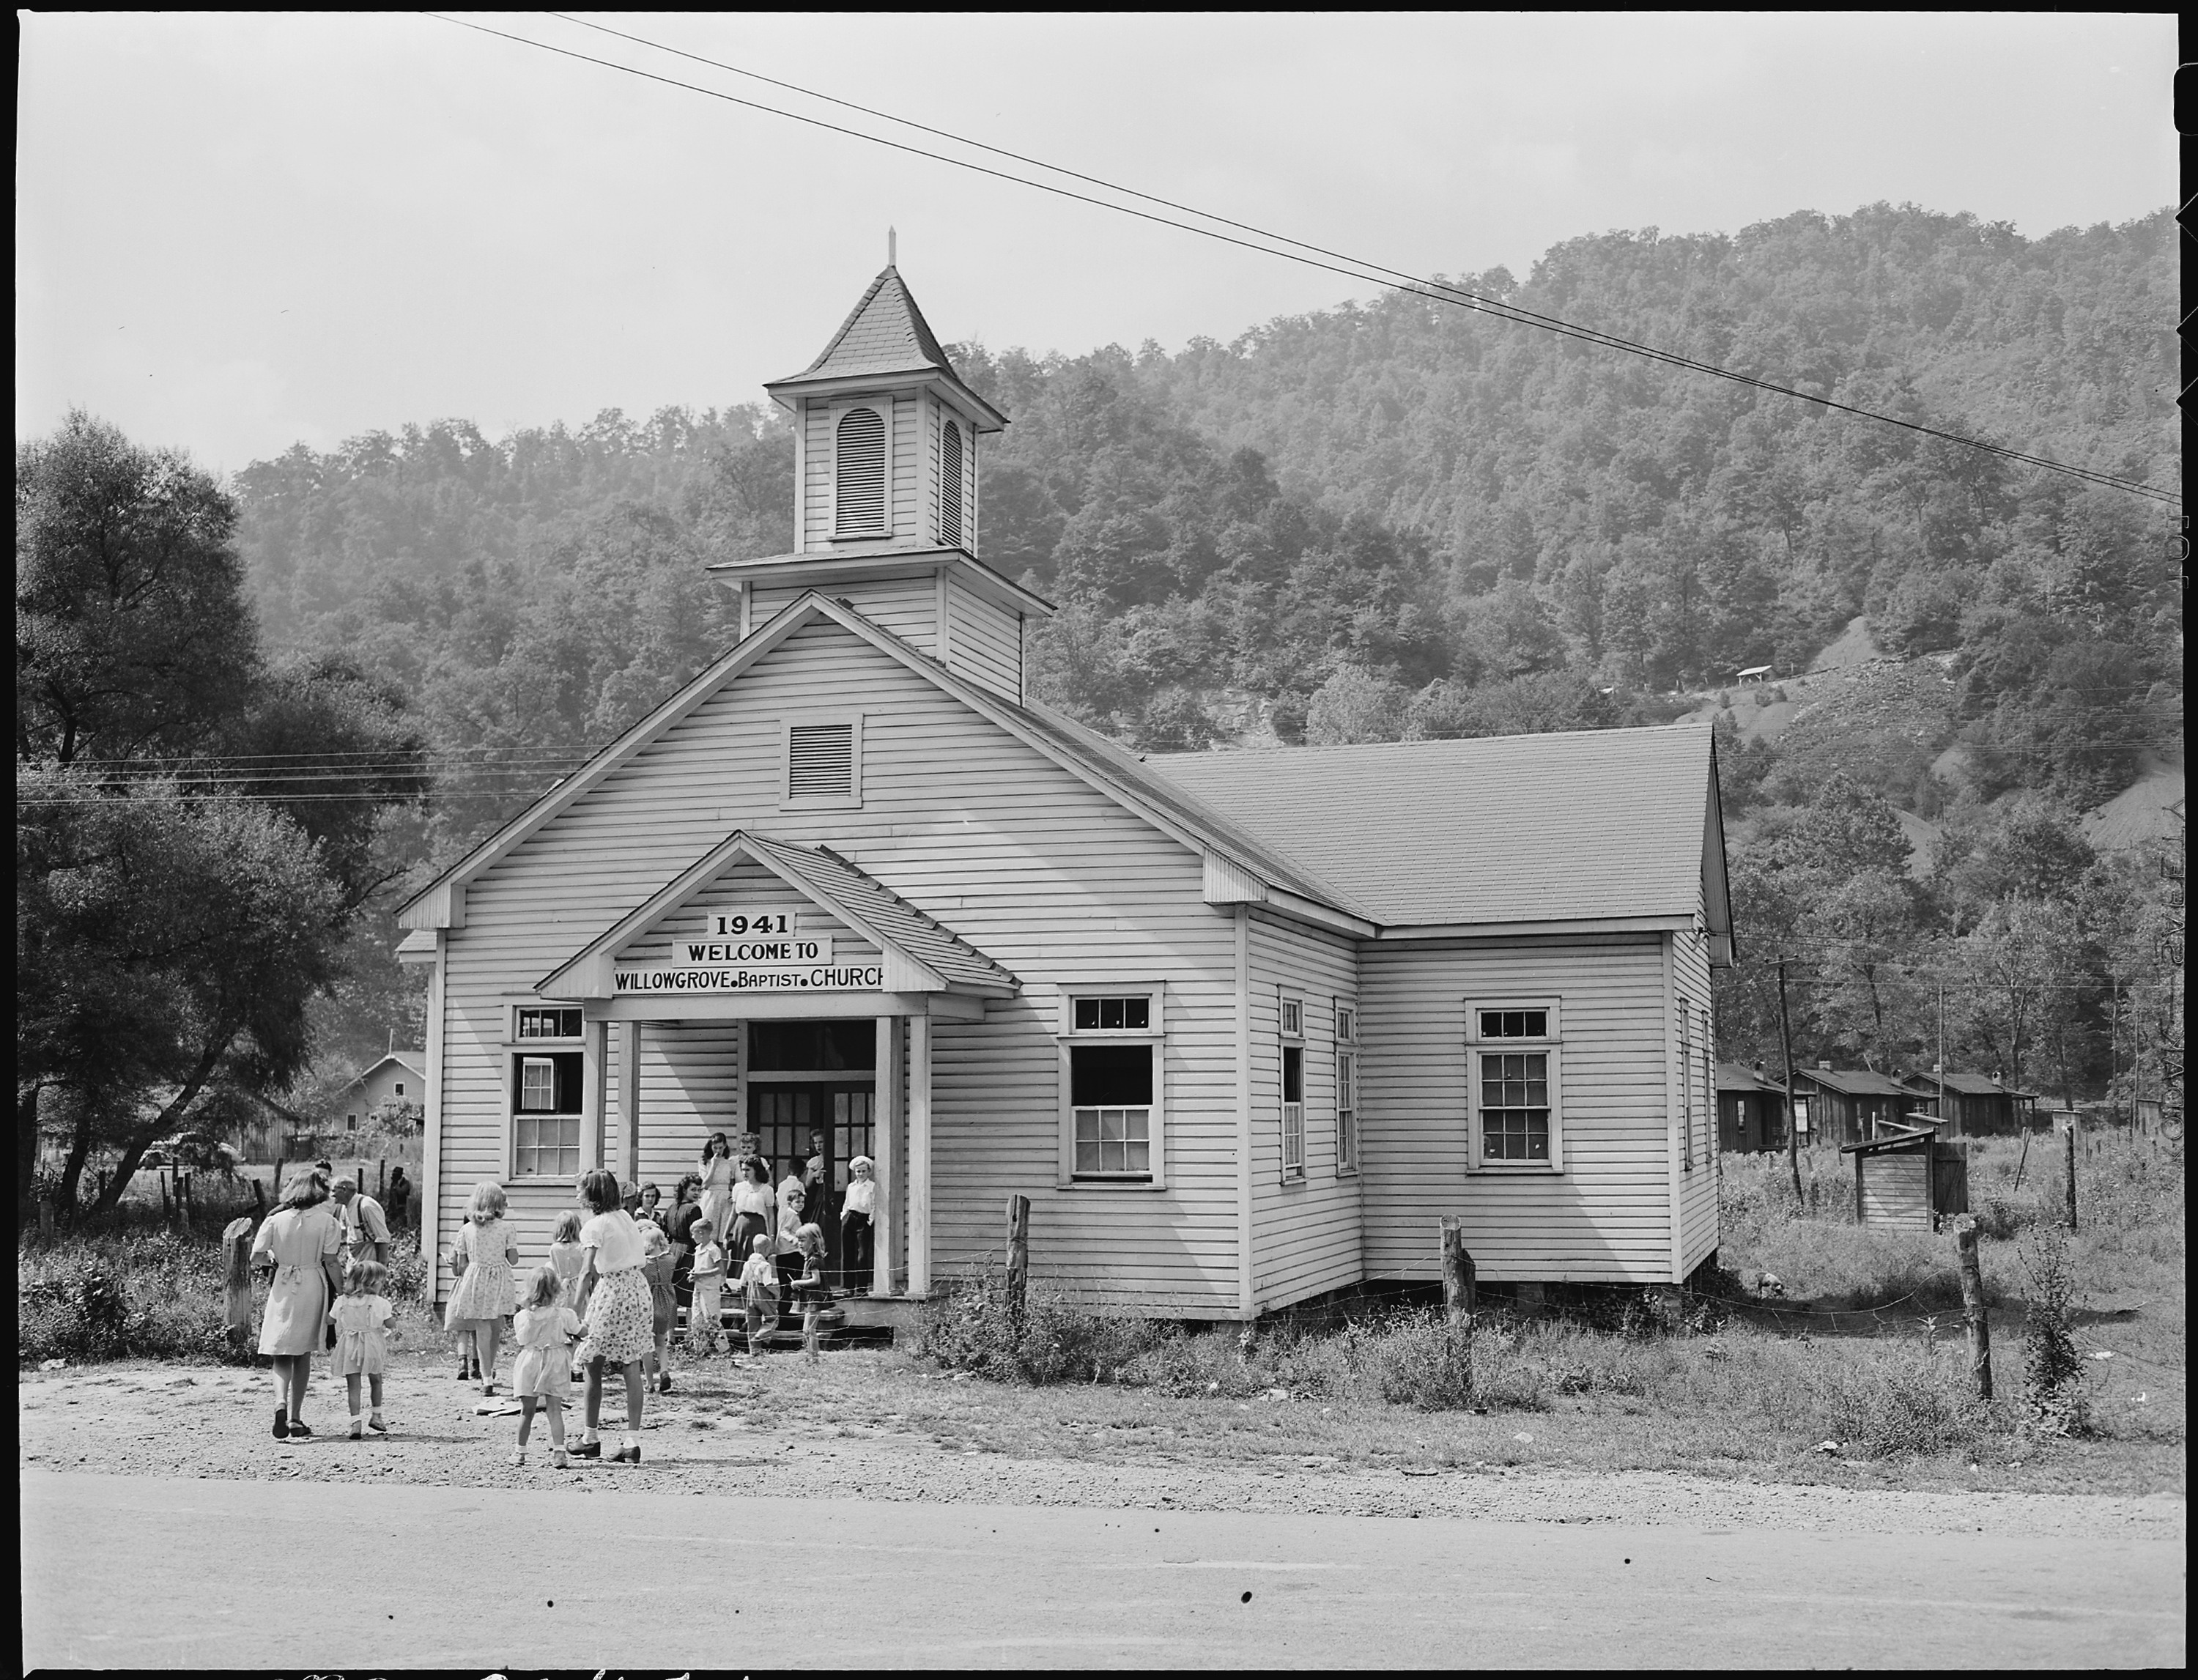 File:Going to Sunday school at the Baptist Church. Lejunior, Harlan County, Kentucky. - NARA - 541344.jpg